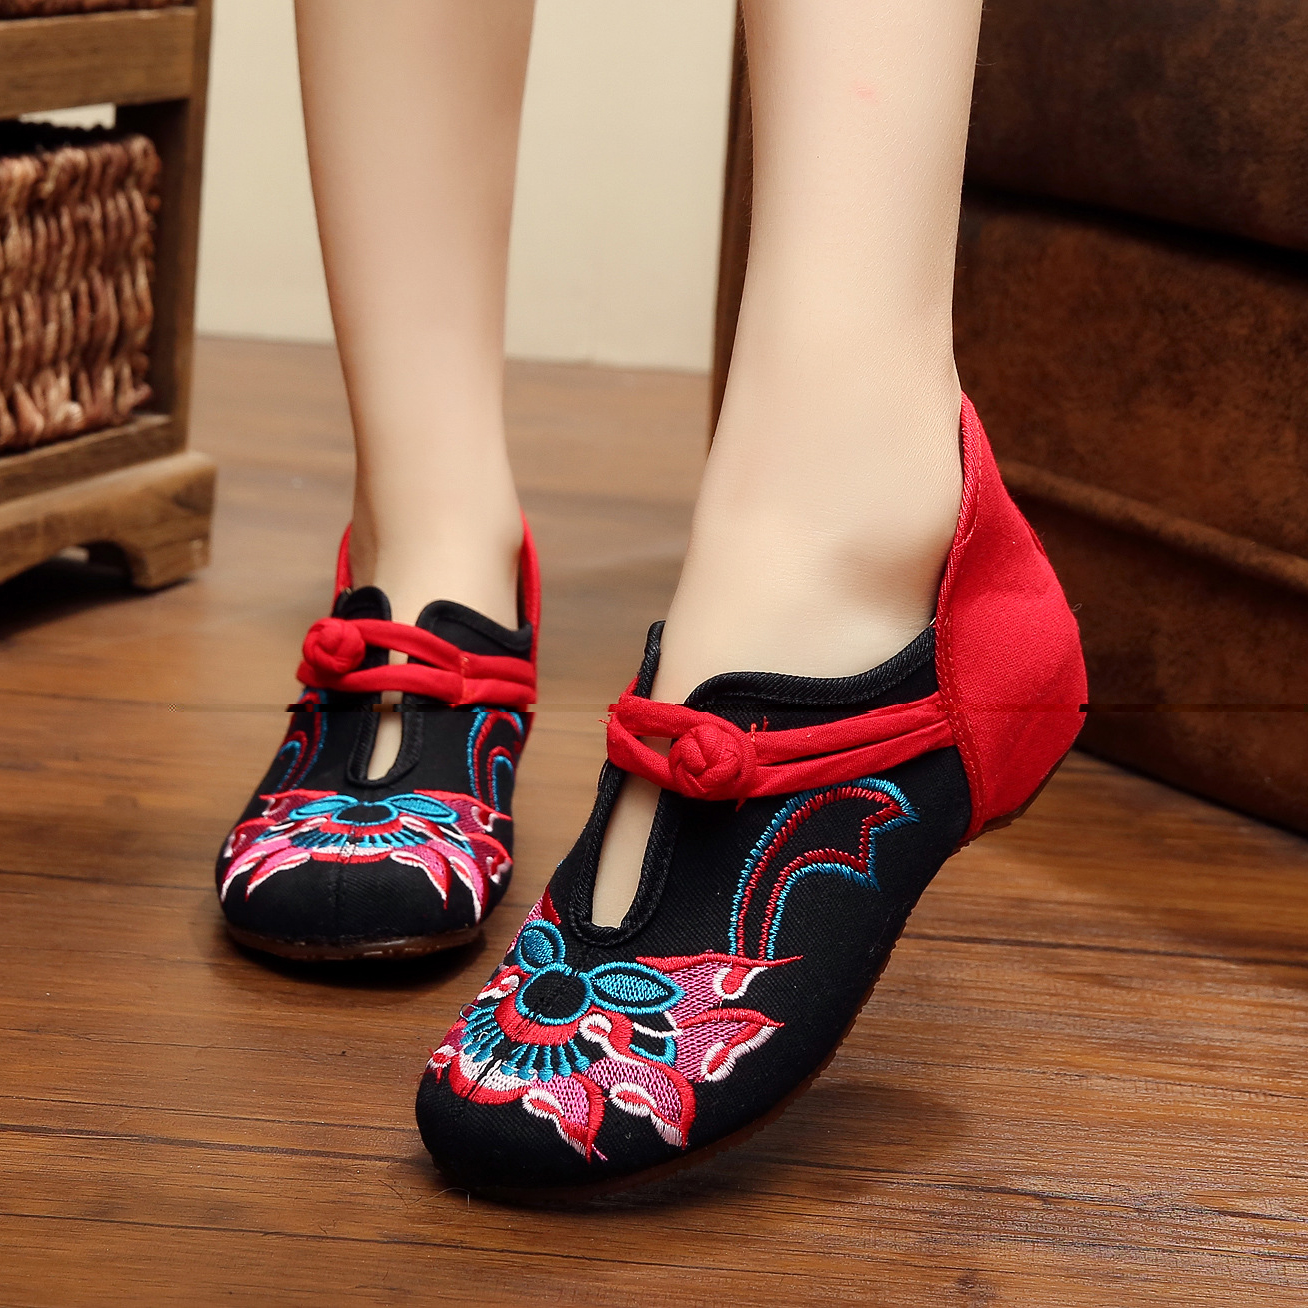 2017 new spring sexy black flat shoes women fashion flowers embroidery retro simple ladies flats Chinese embroidered shoes<br><br>Aliexpress